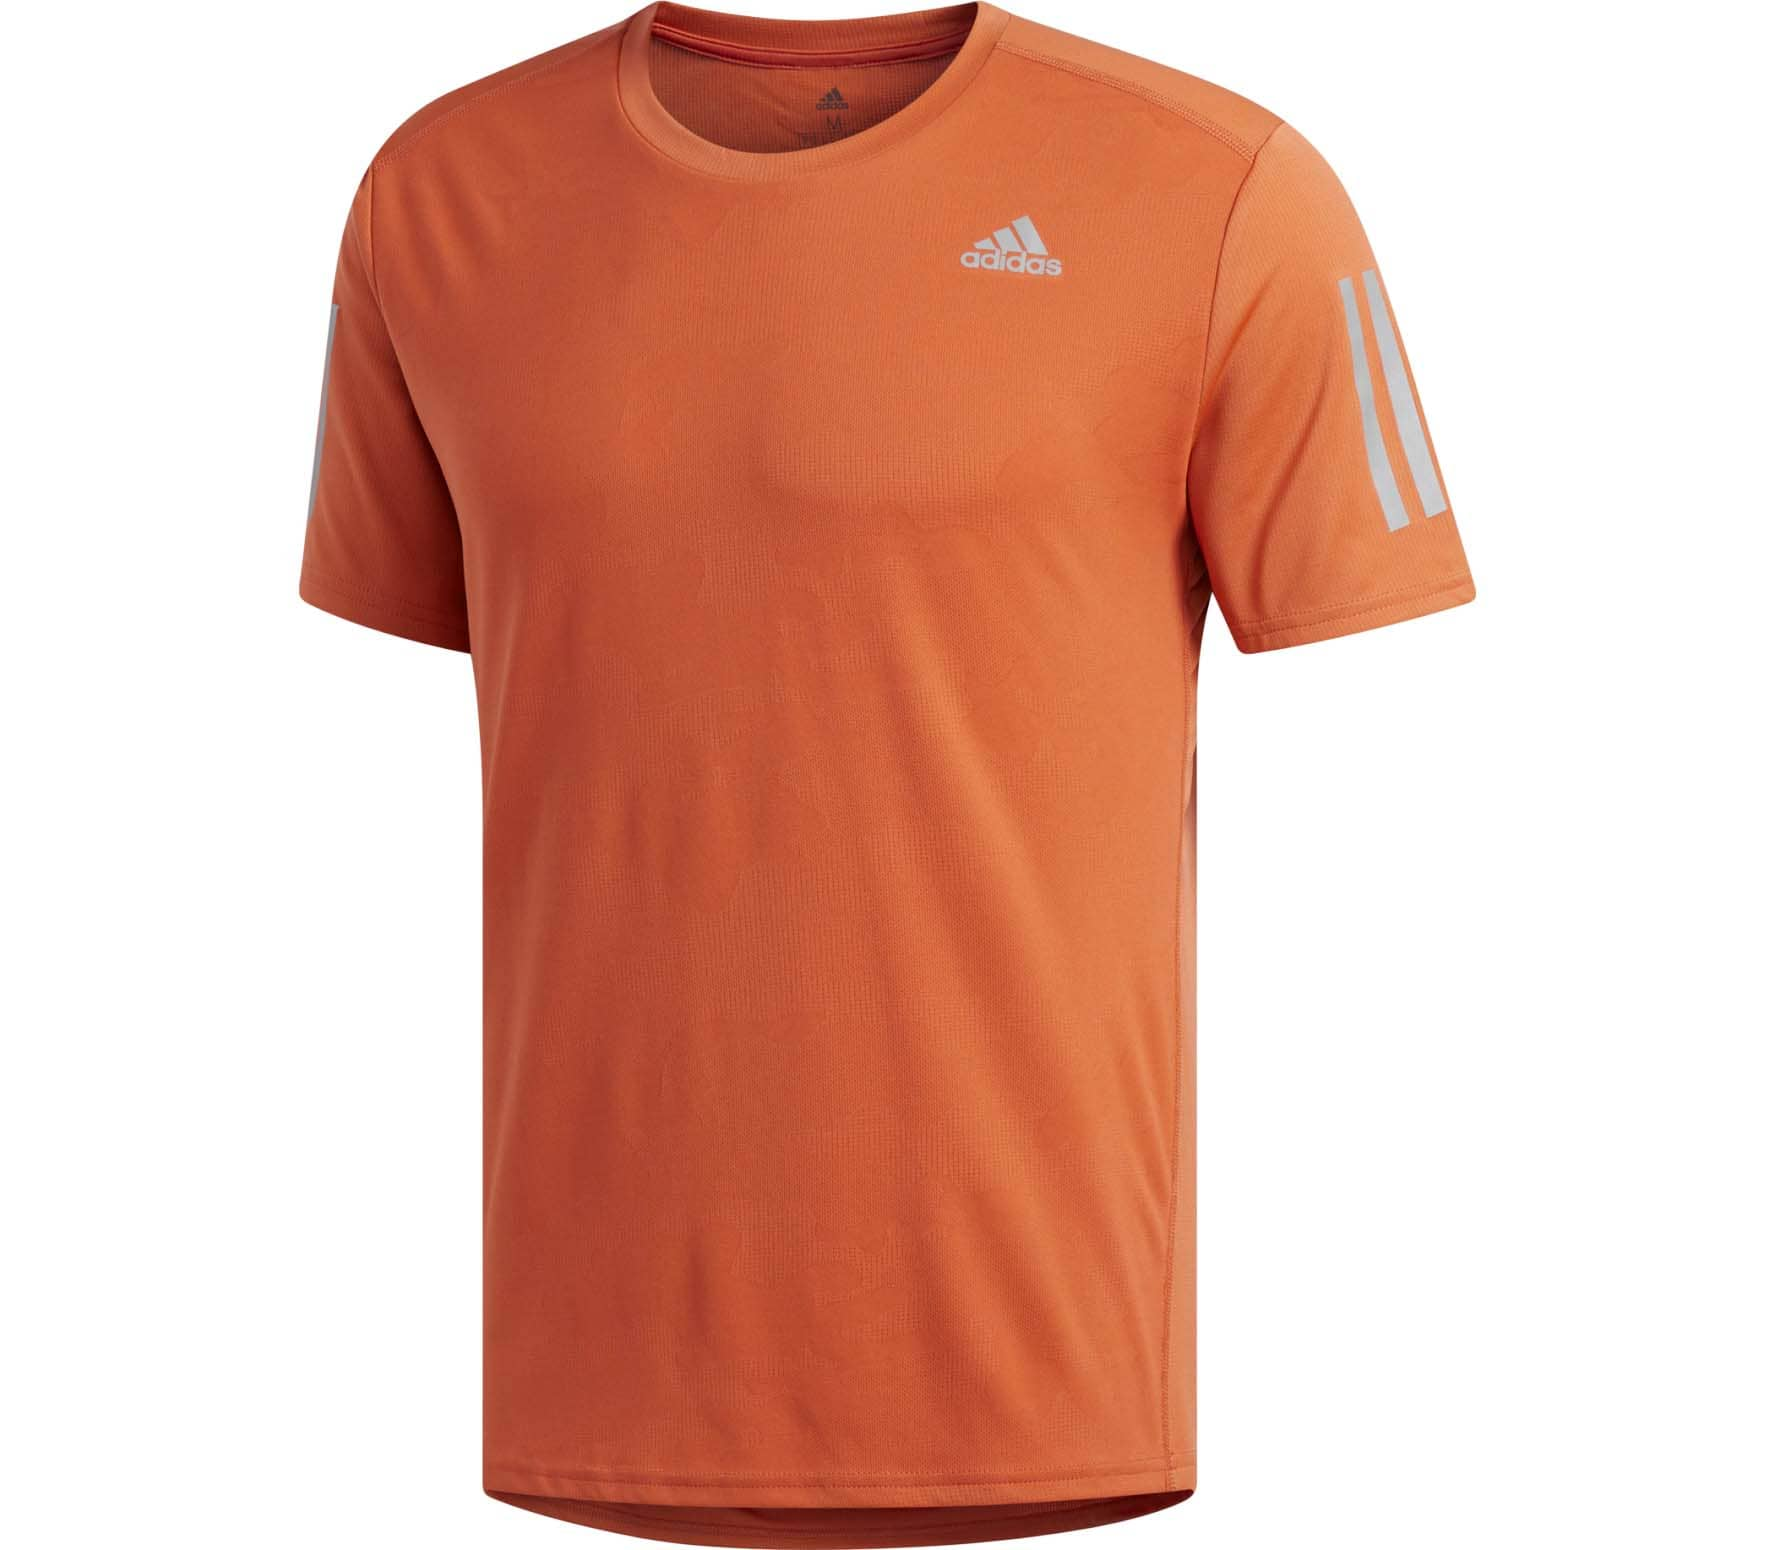 adidas Performance Response men's running top (orange)